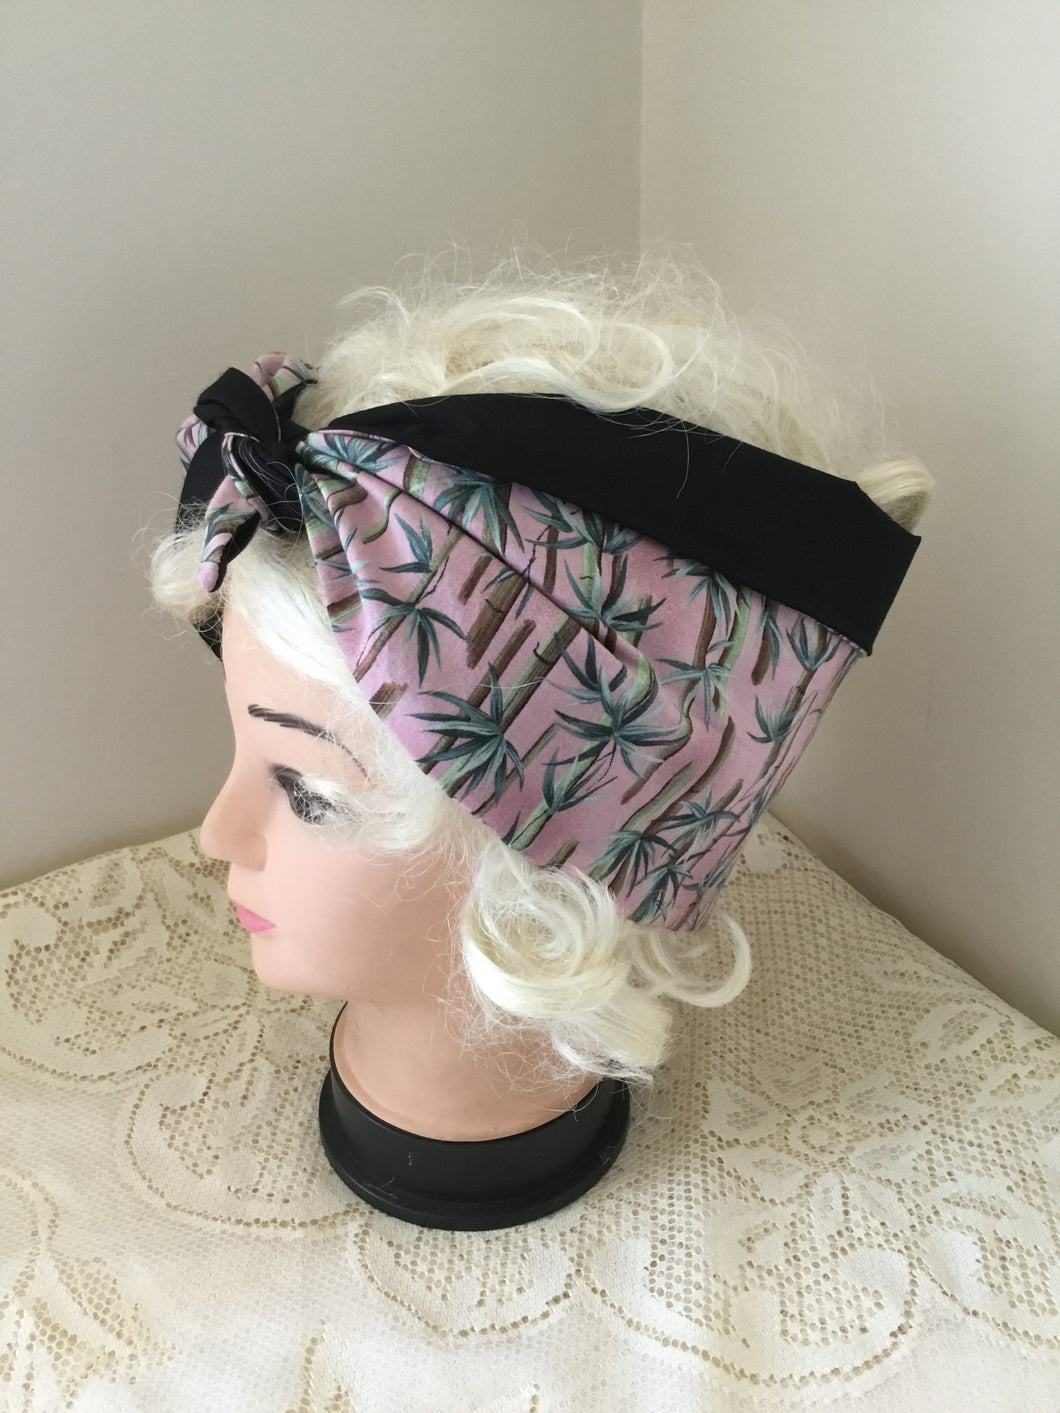 Bamboo print - vintage inspired do-rags